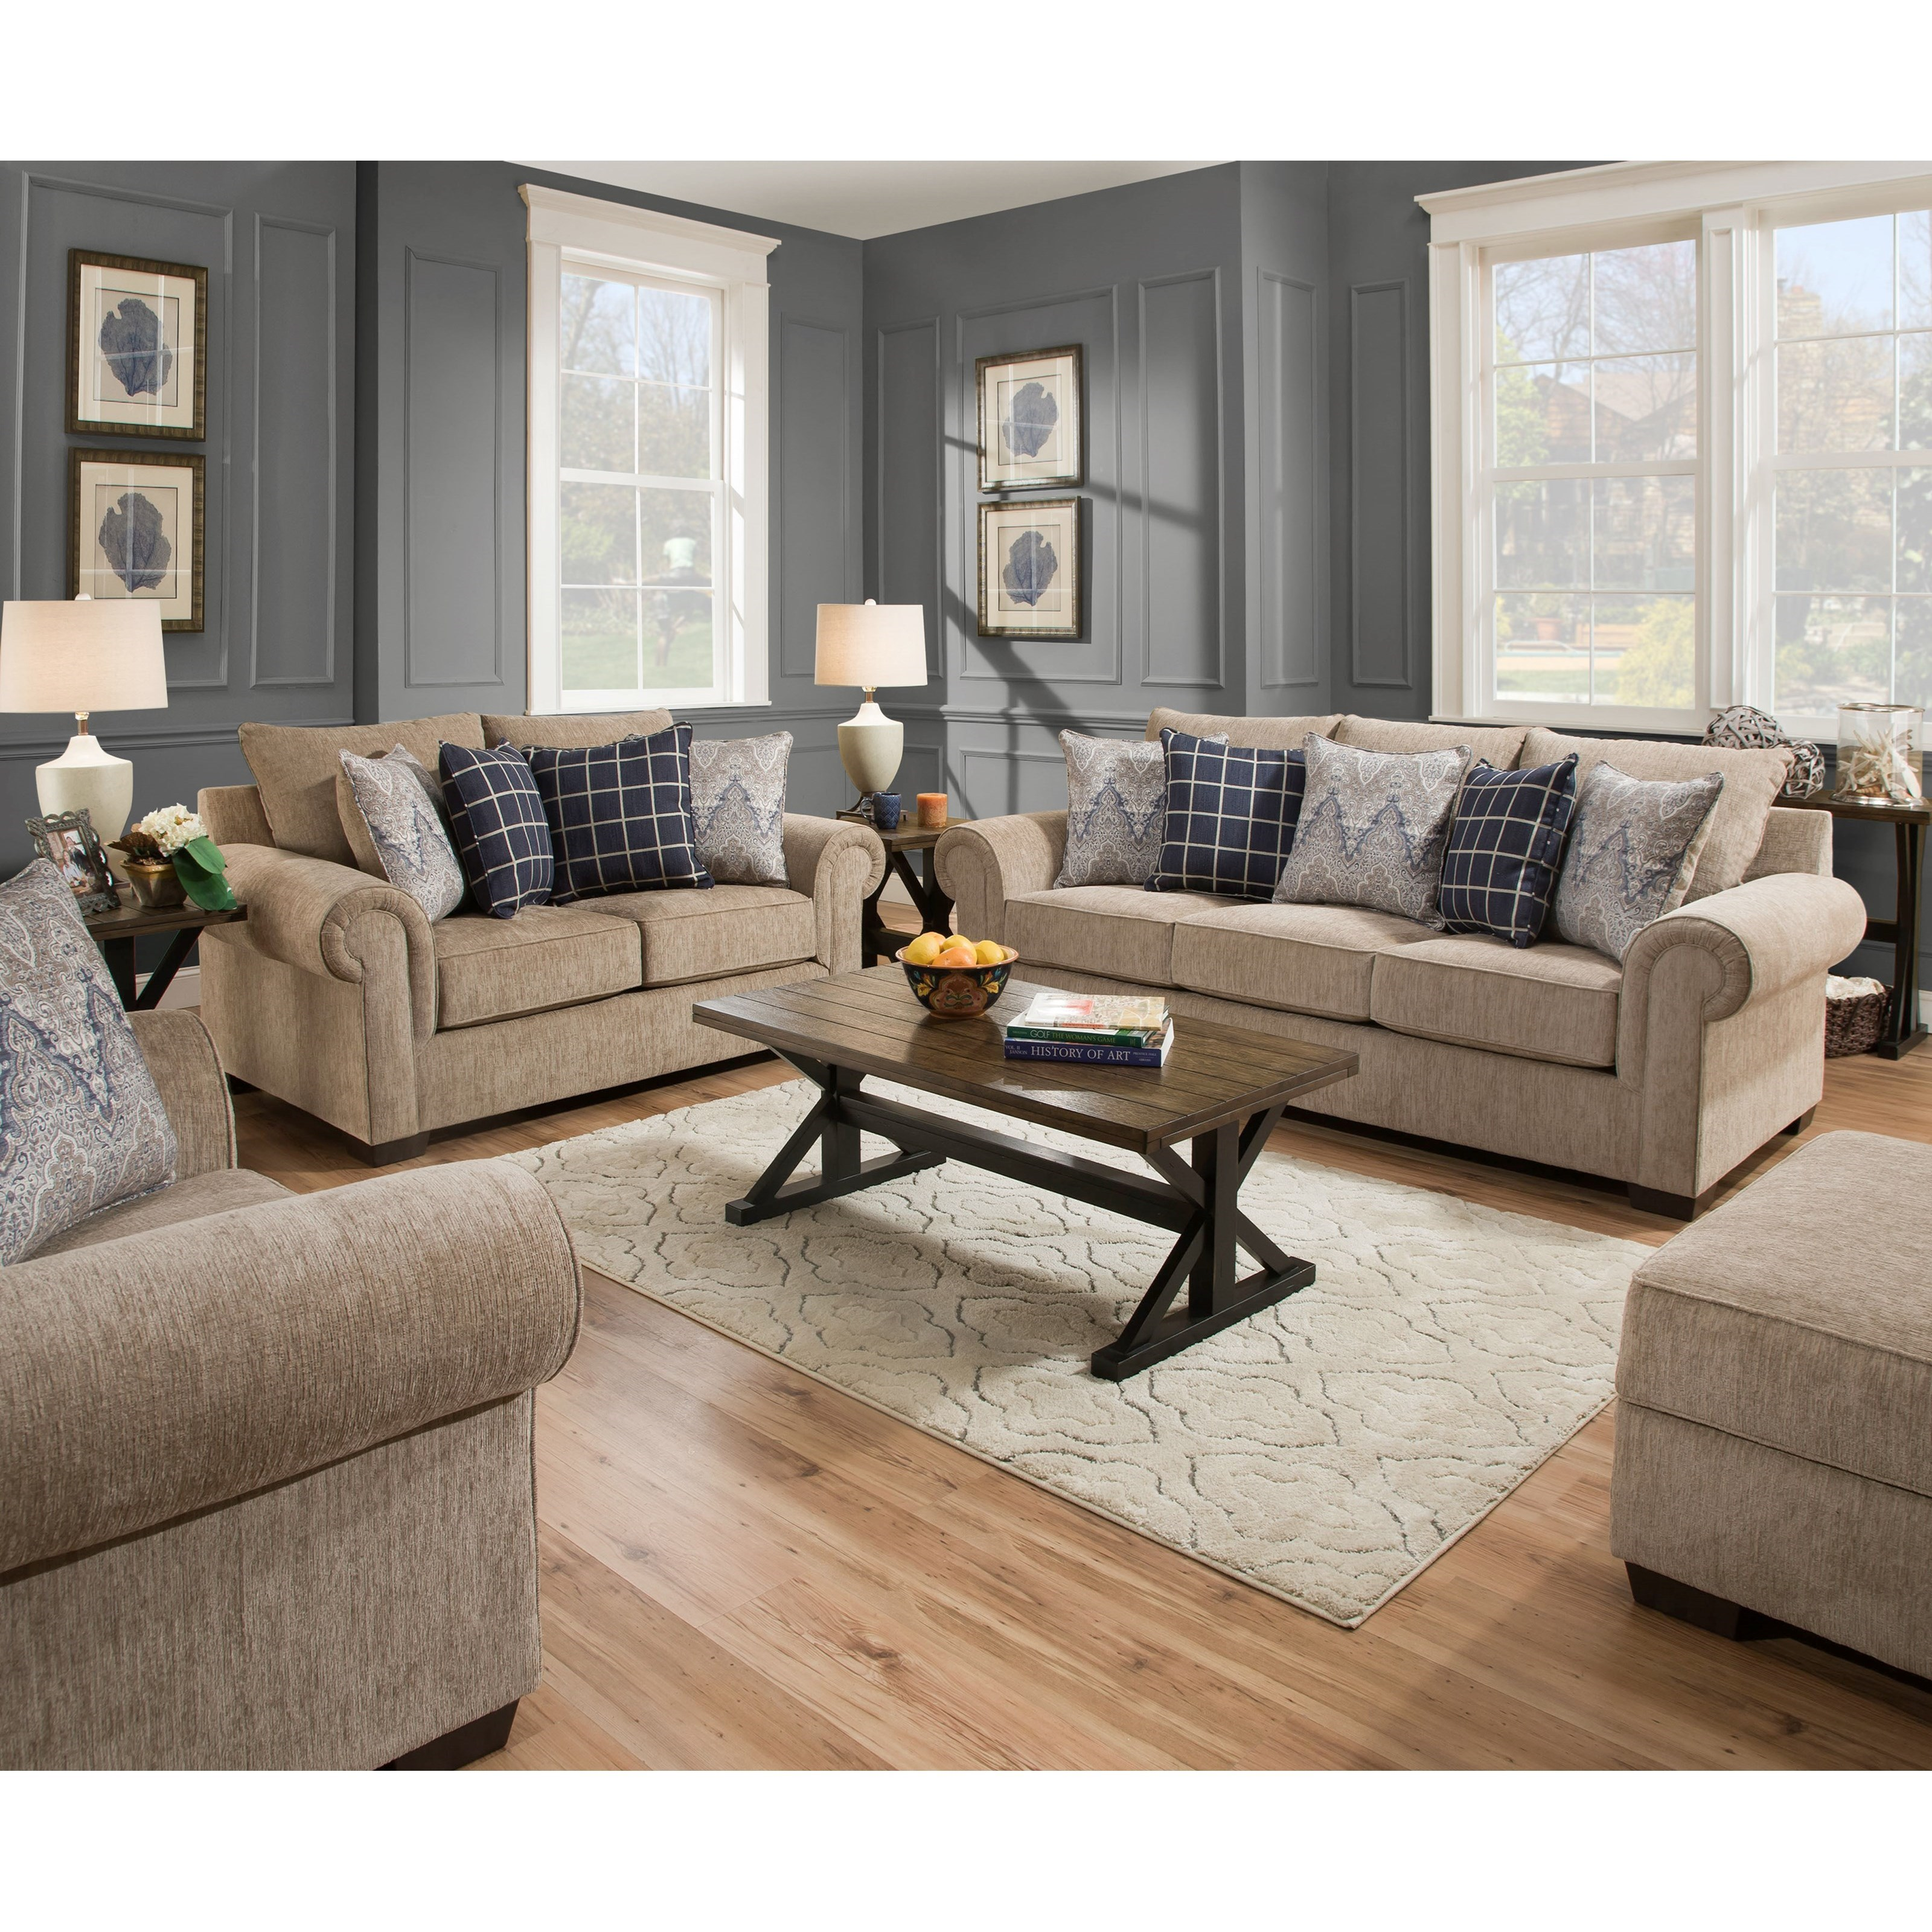 Simmons Upholstery 7592BR Living Room Group - Item Number: 7592BR Living Room Group 1